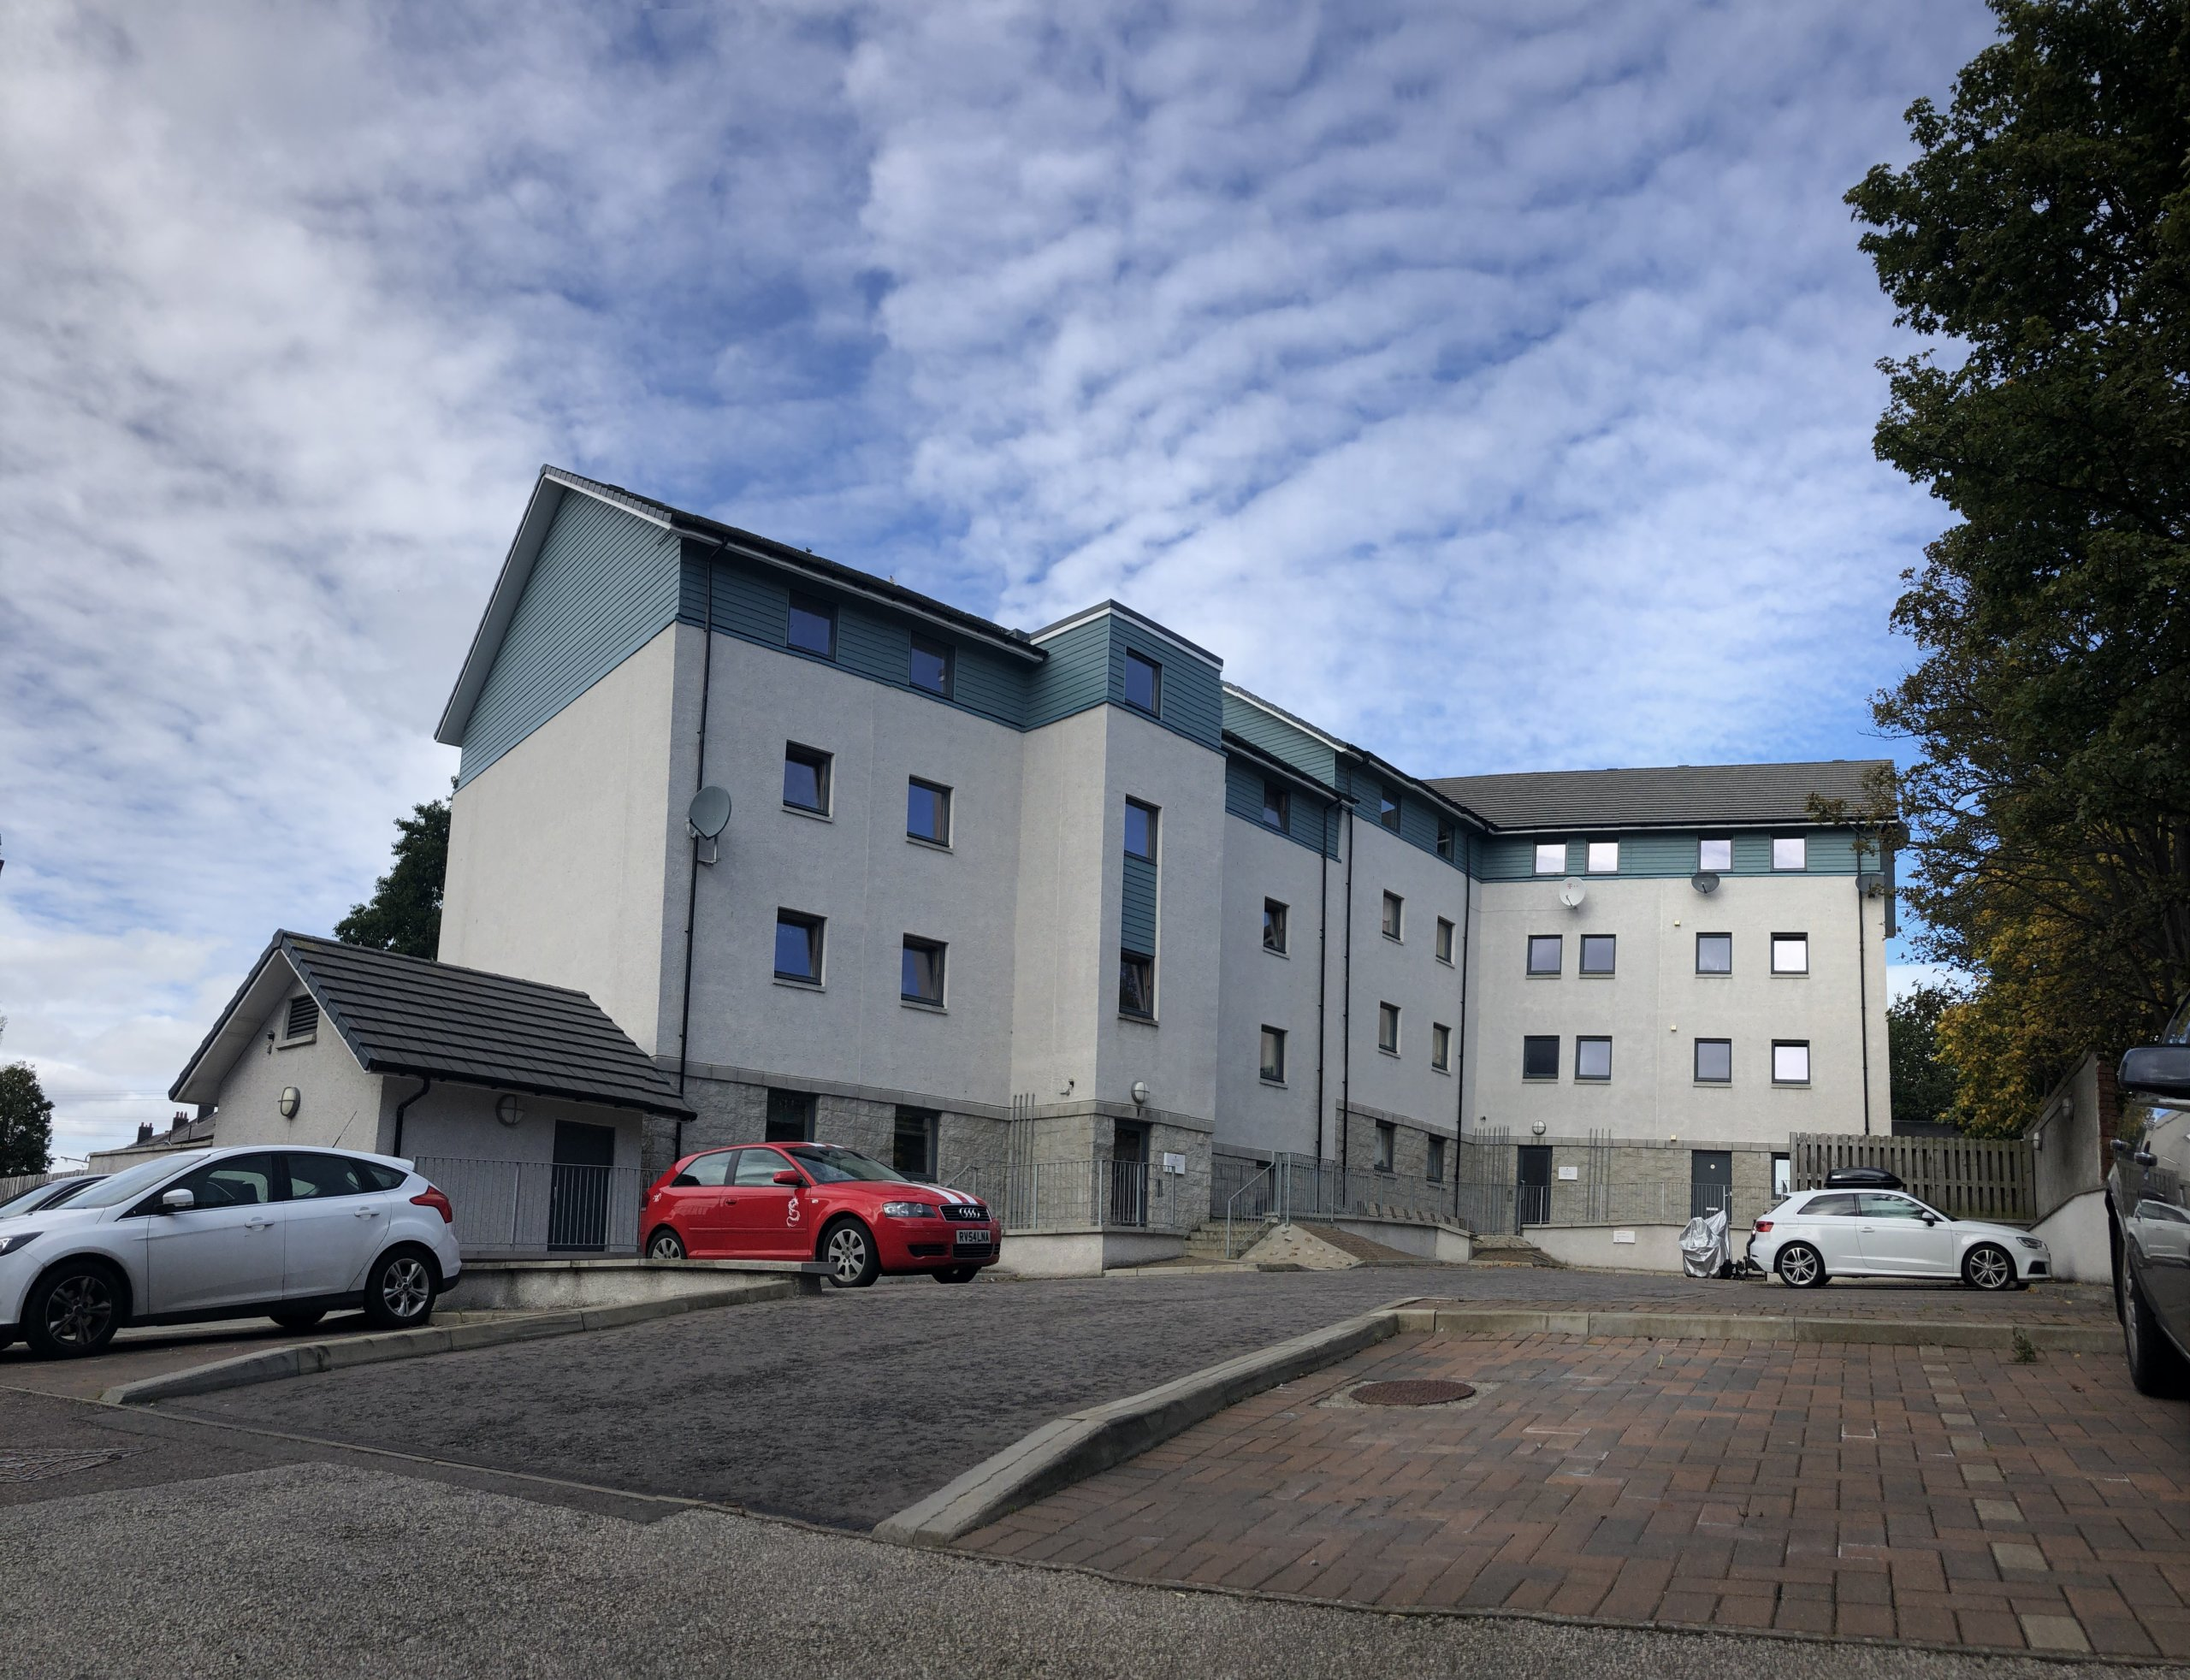 Photo of affordable housing in Scotland, Old Chruch Road, Aberdeen